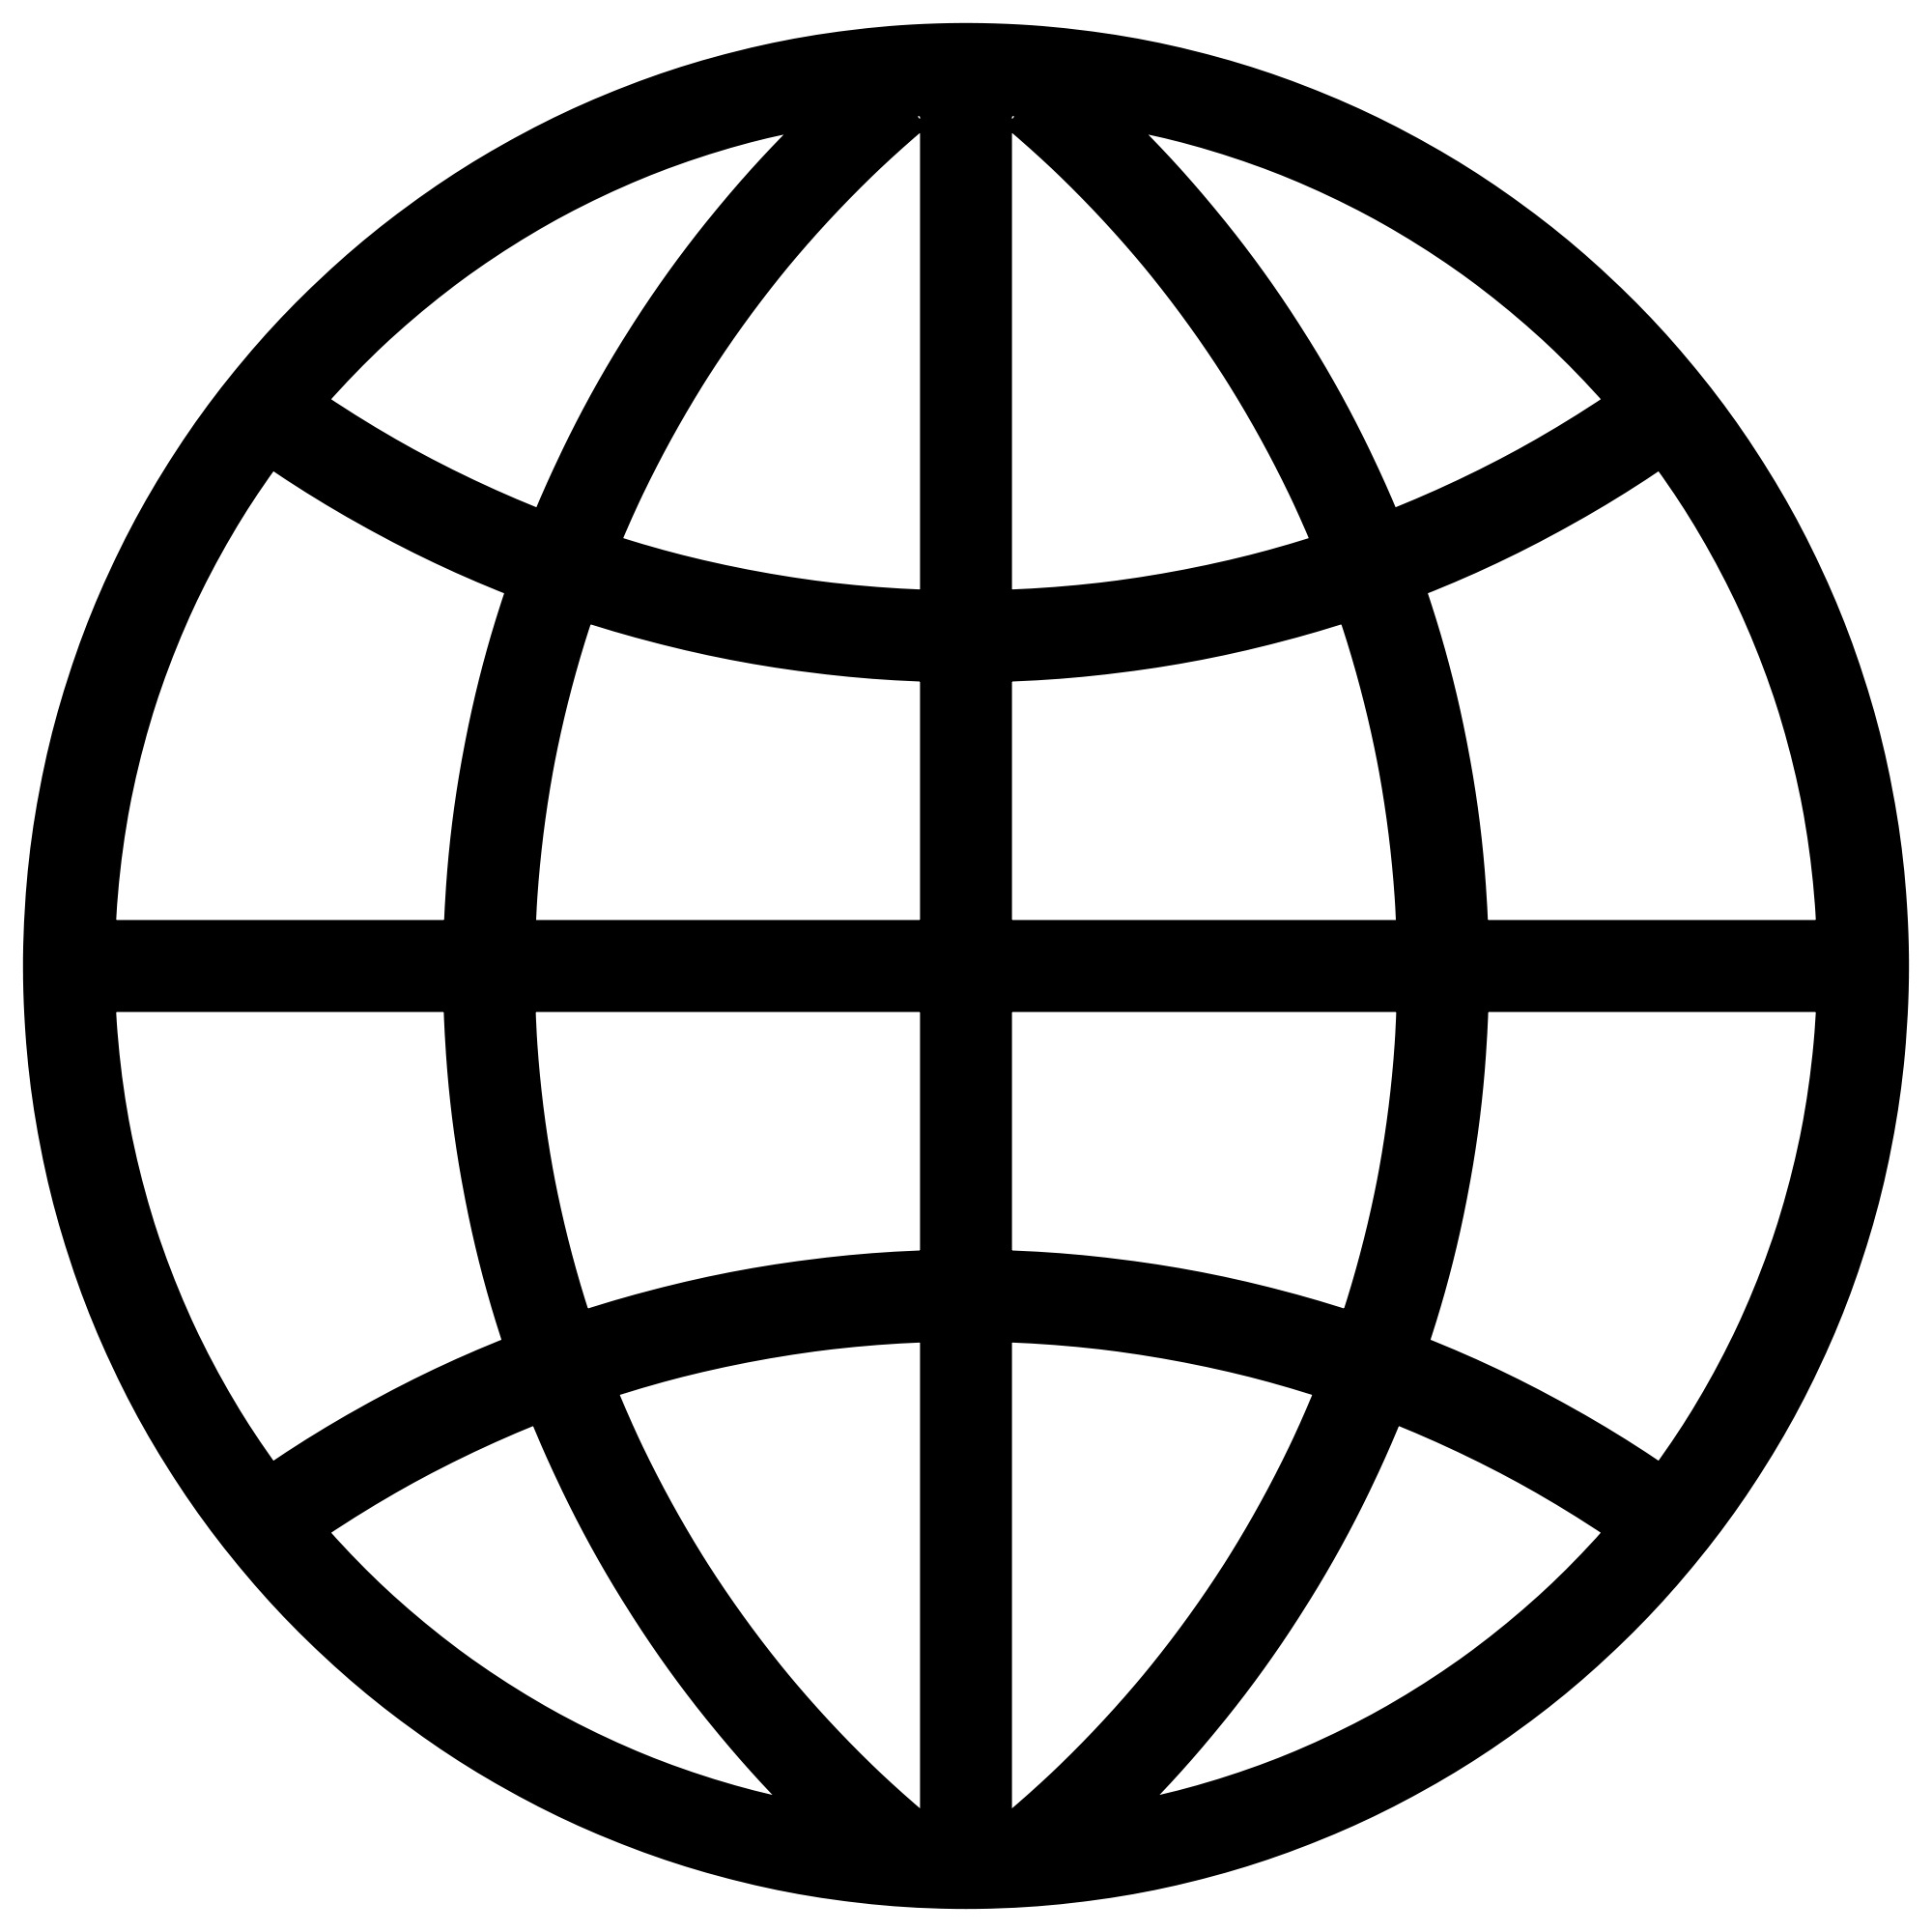 World Wide Web Icon Vector at GetDrawings.com.